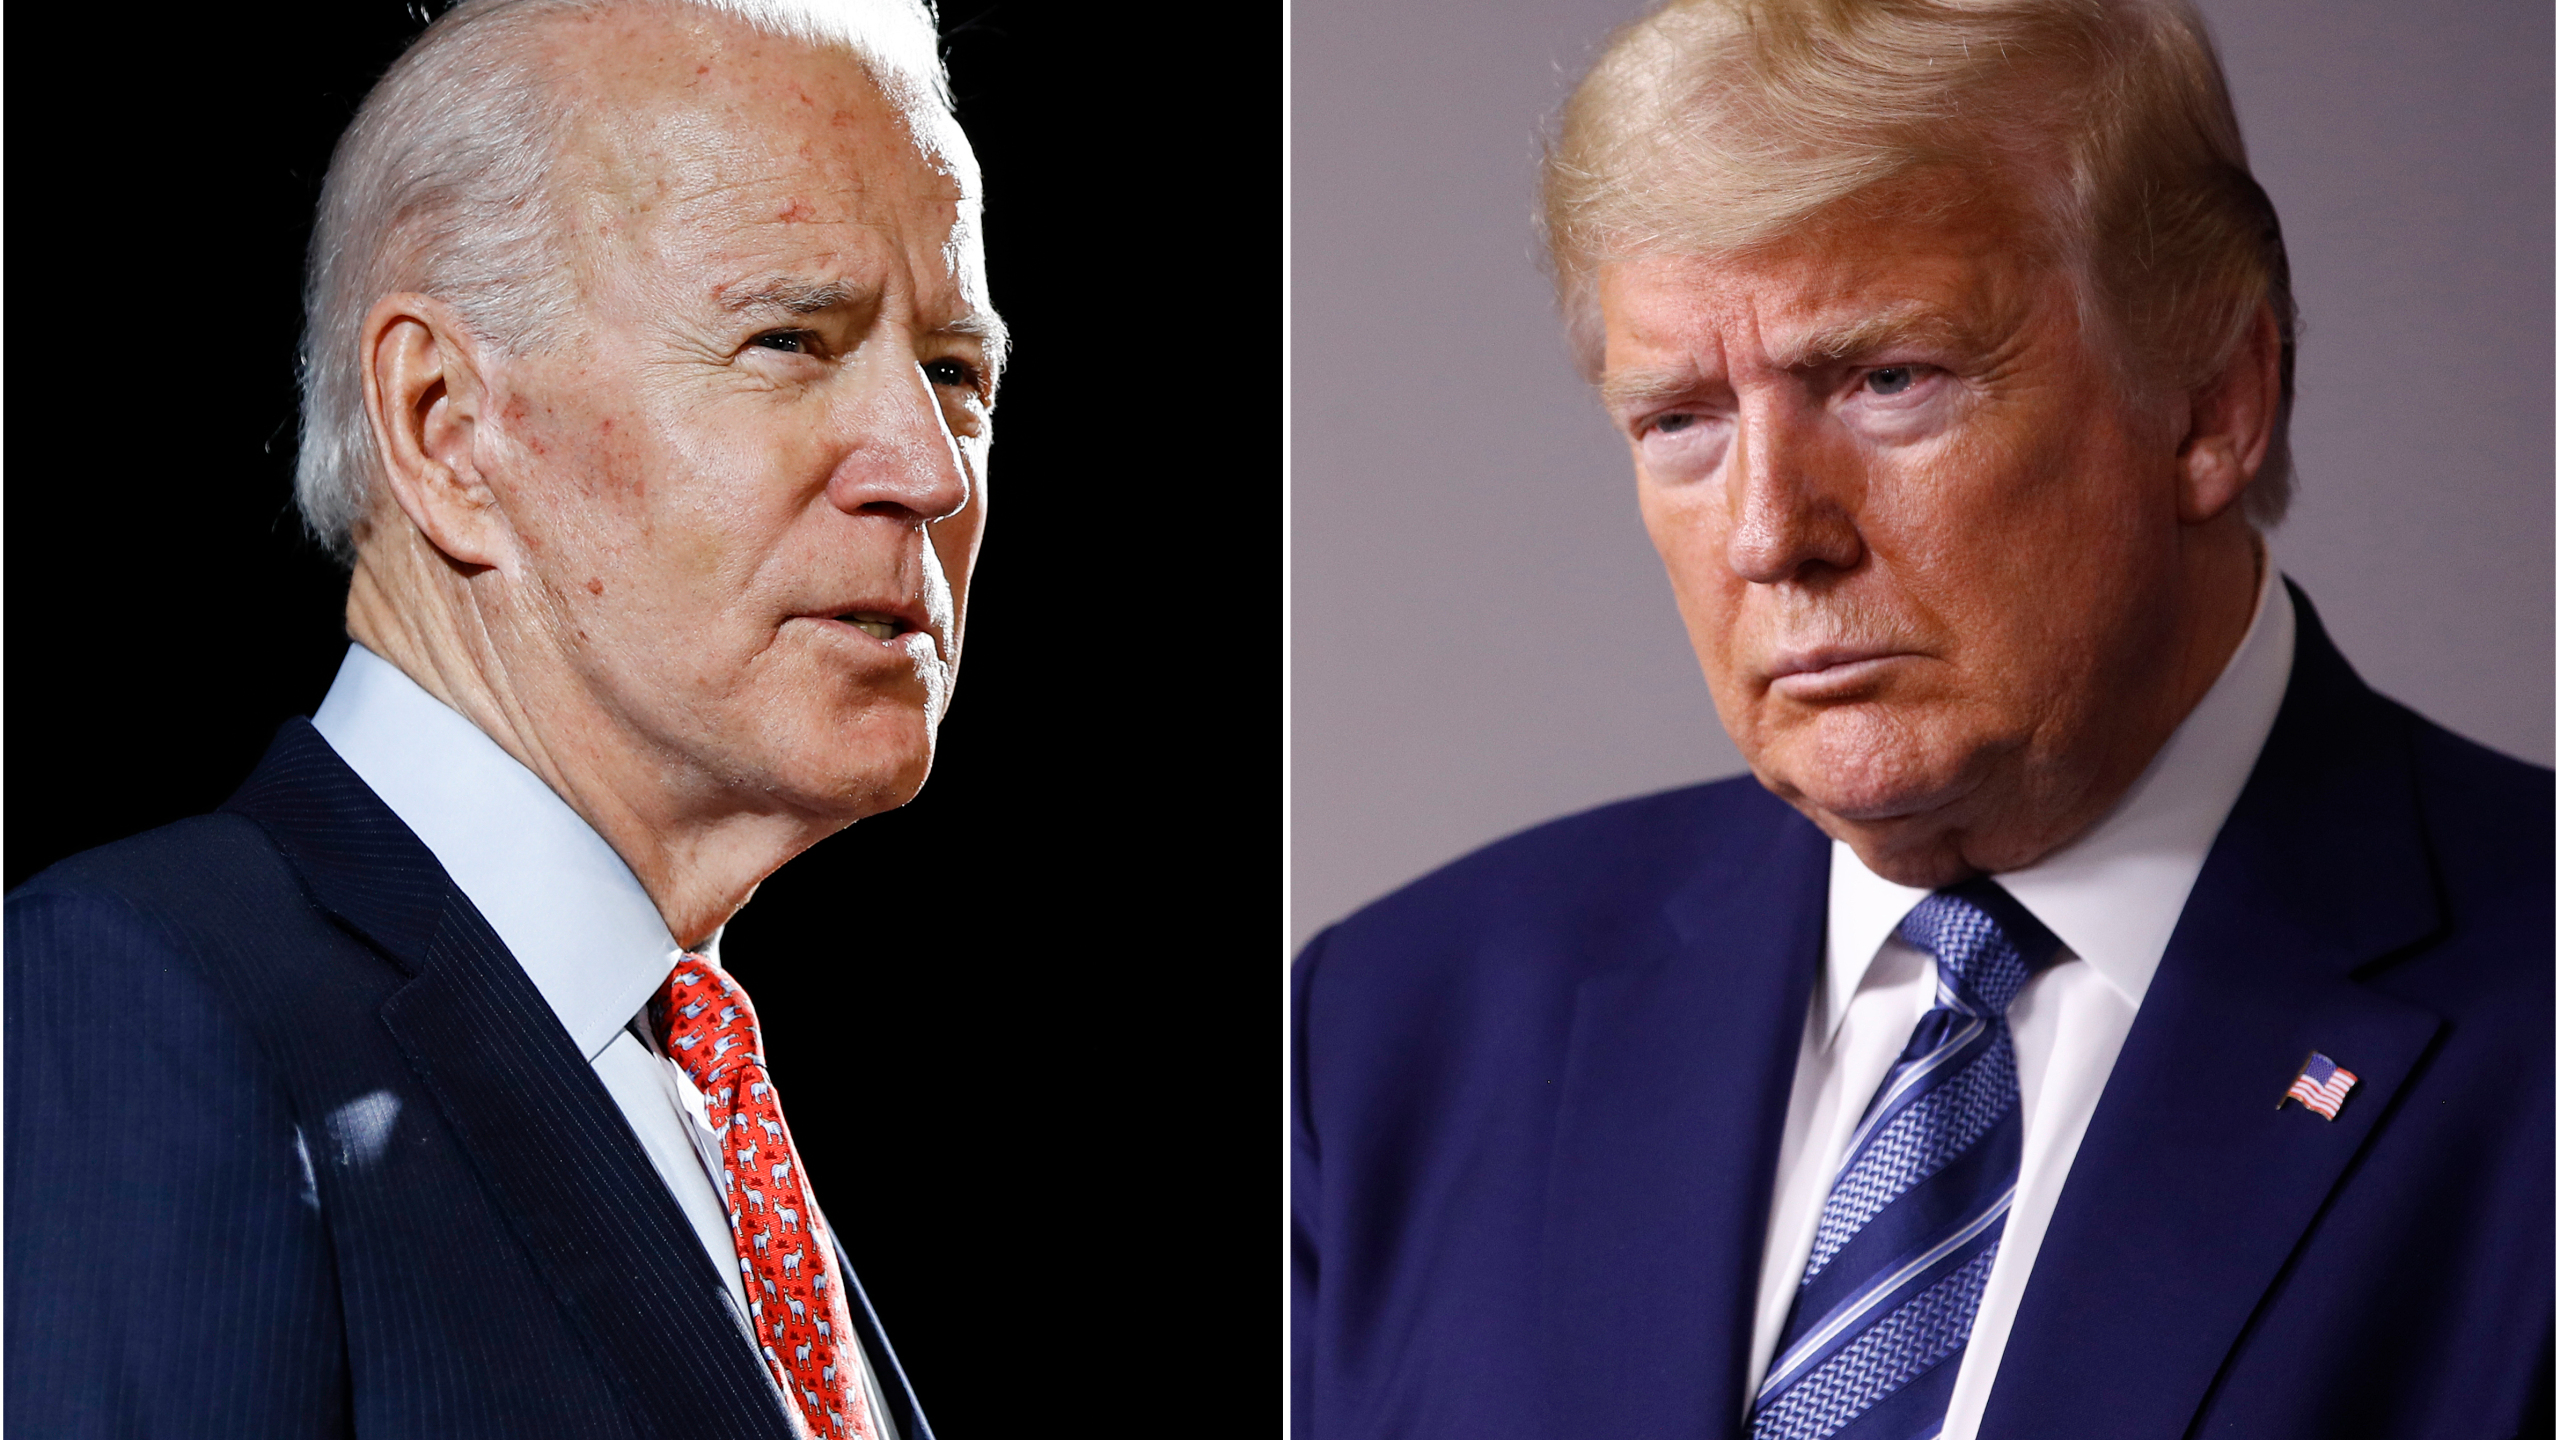 In this combination of file photos, former Vice President Joe Biden, left, speaks in Wilmington, Del., on March 12, 2020, and President Donald Trump speaks at the White House in Washington on April 5, 2020. (AP Photo/File)